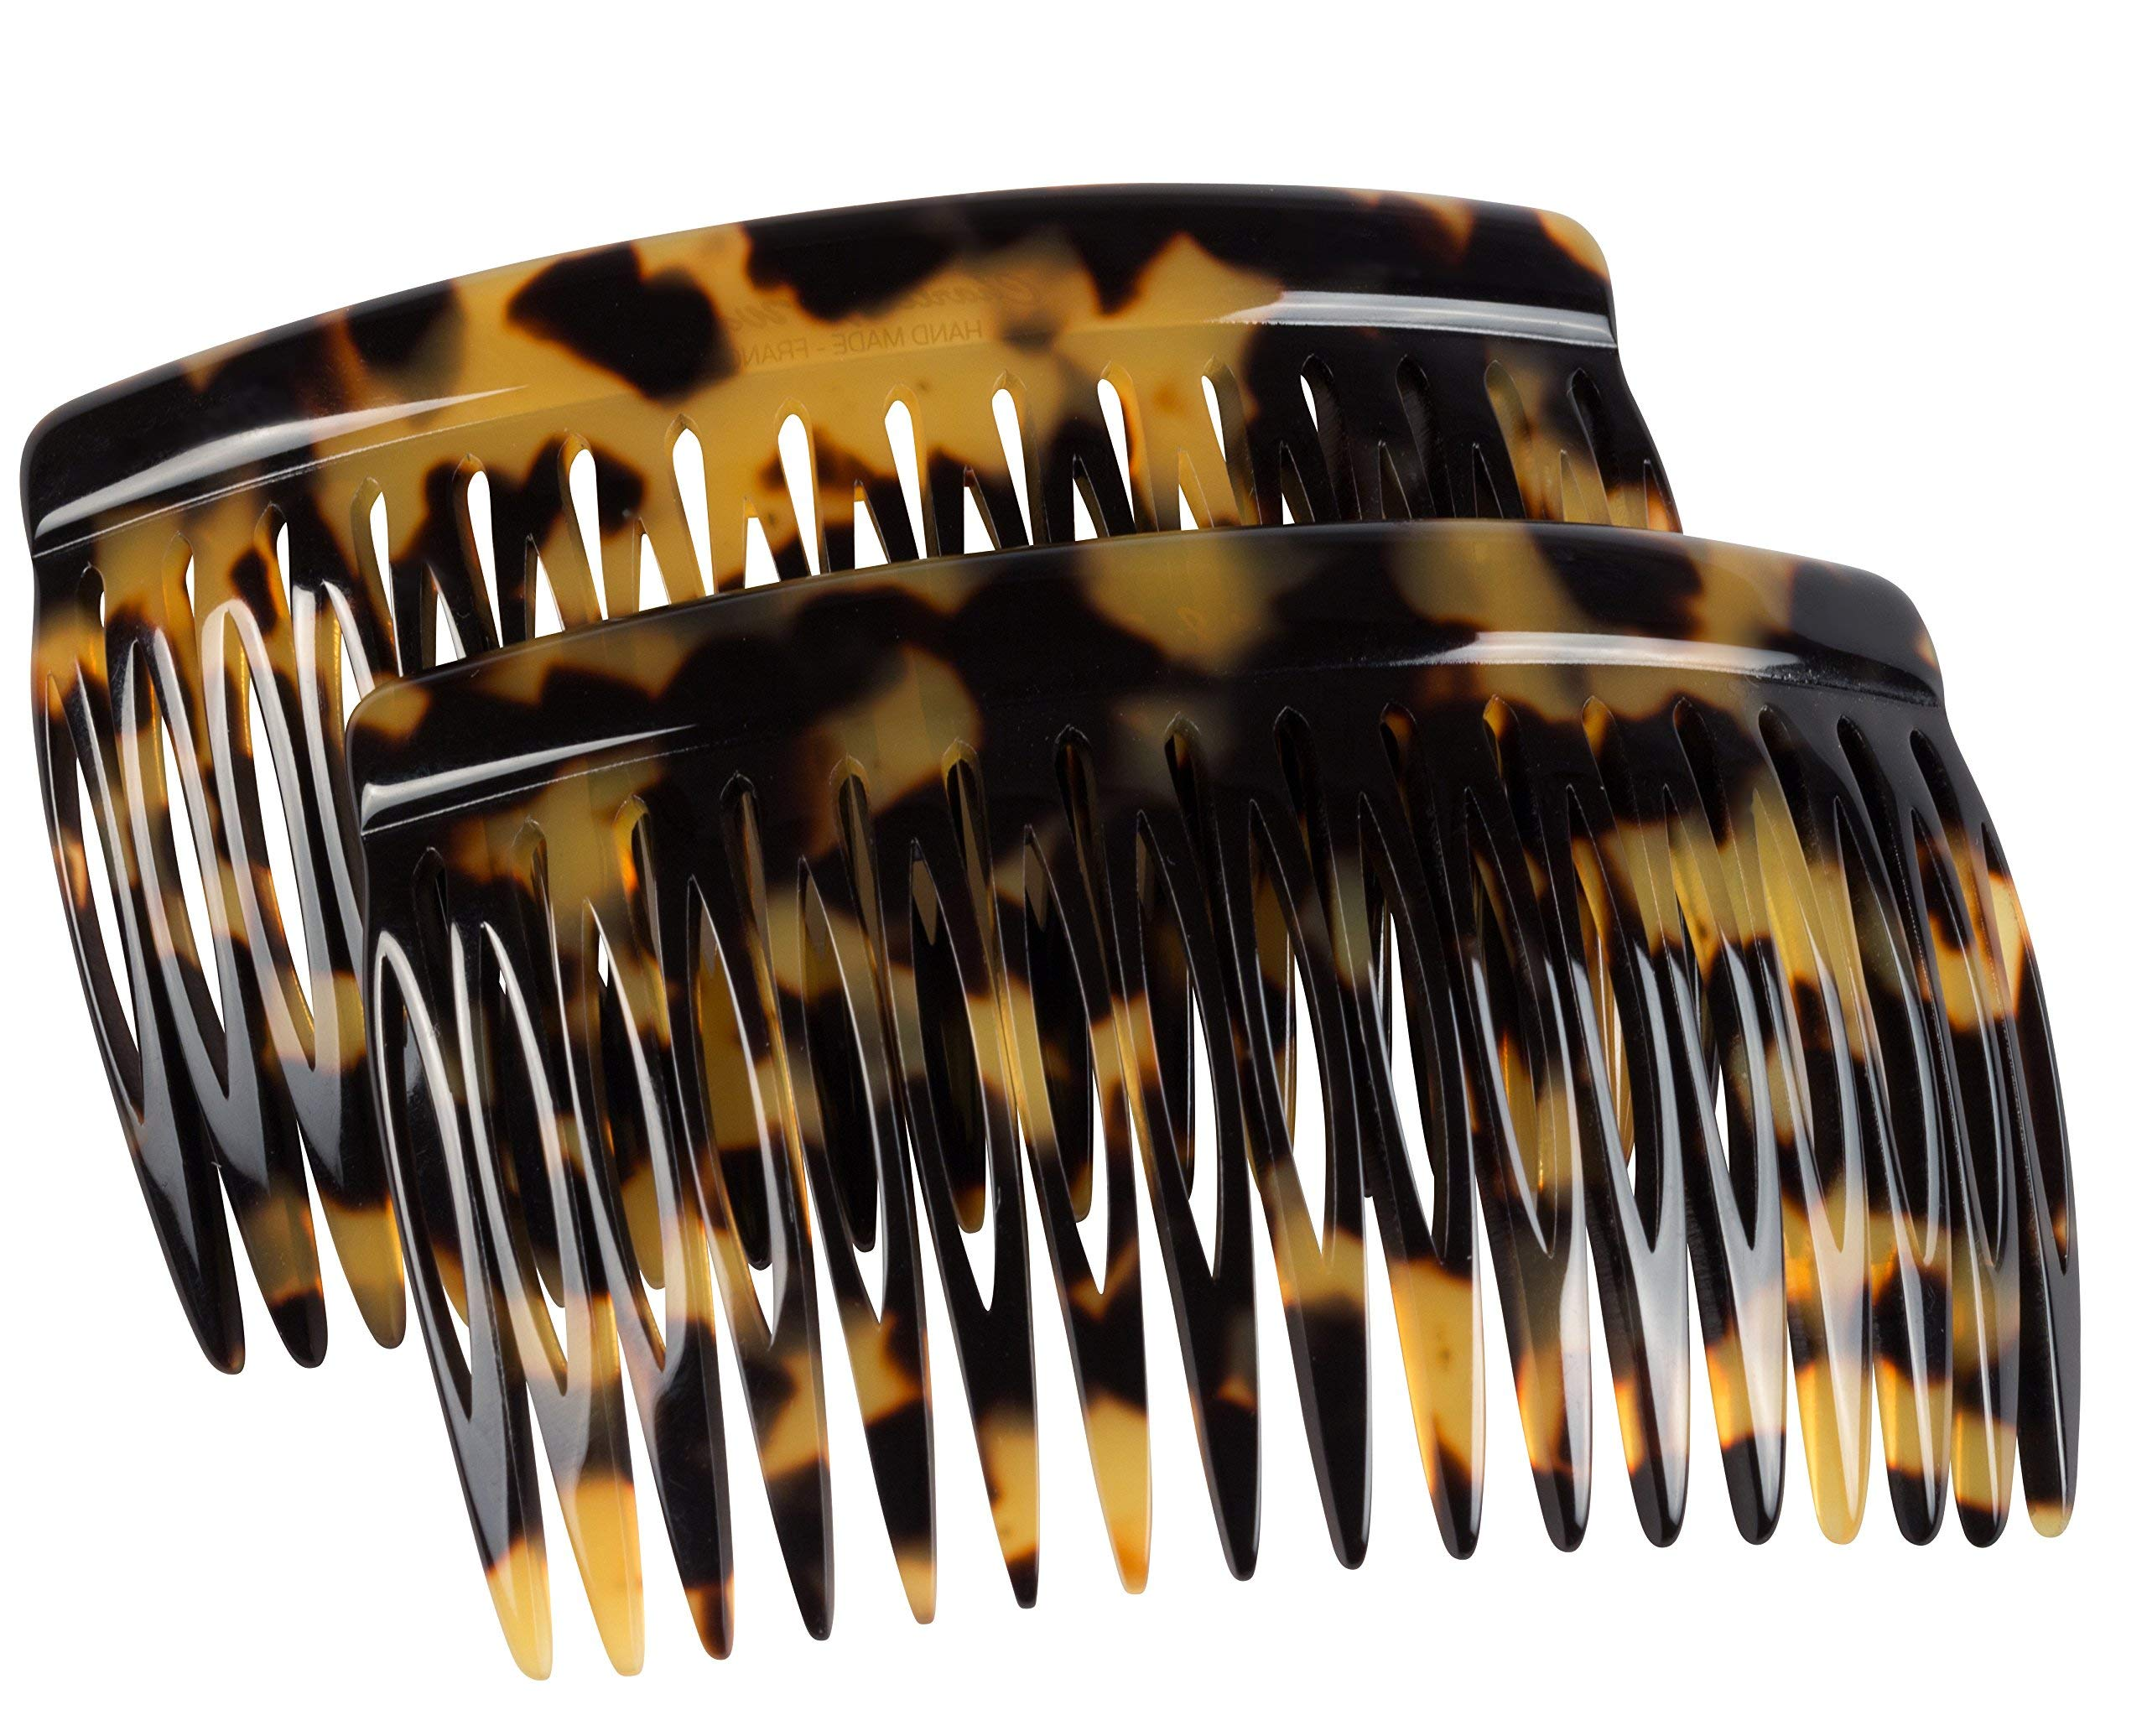 Charles J. Wahba Side Comb Pairs - 17 Teeth (Tokyo Color) Handmade in France by Charles J. Wahba